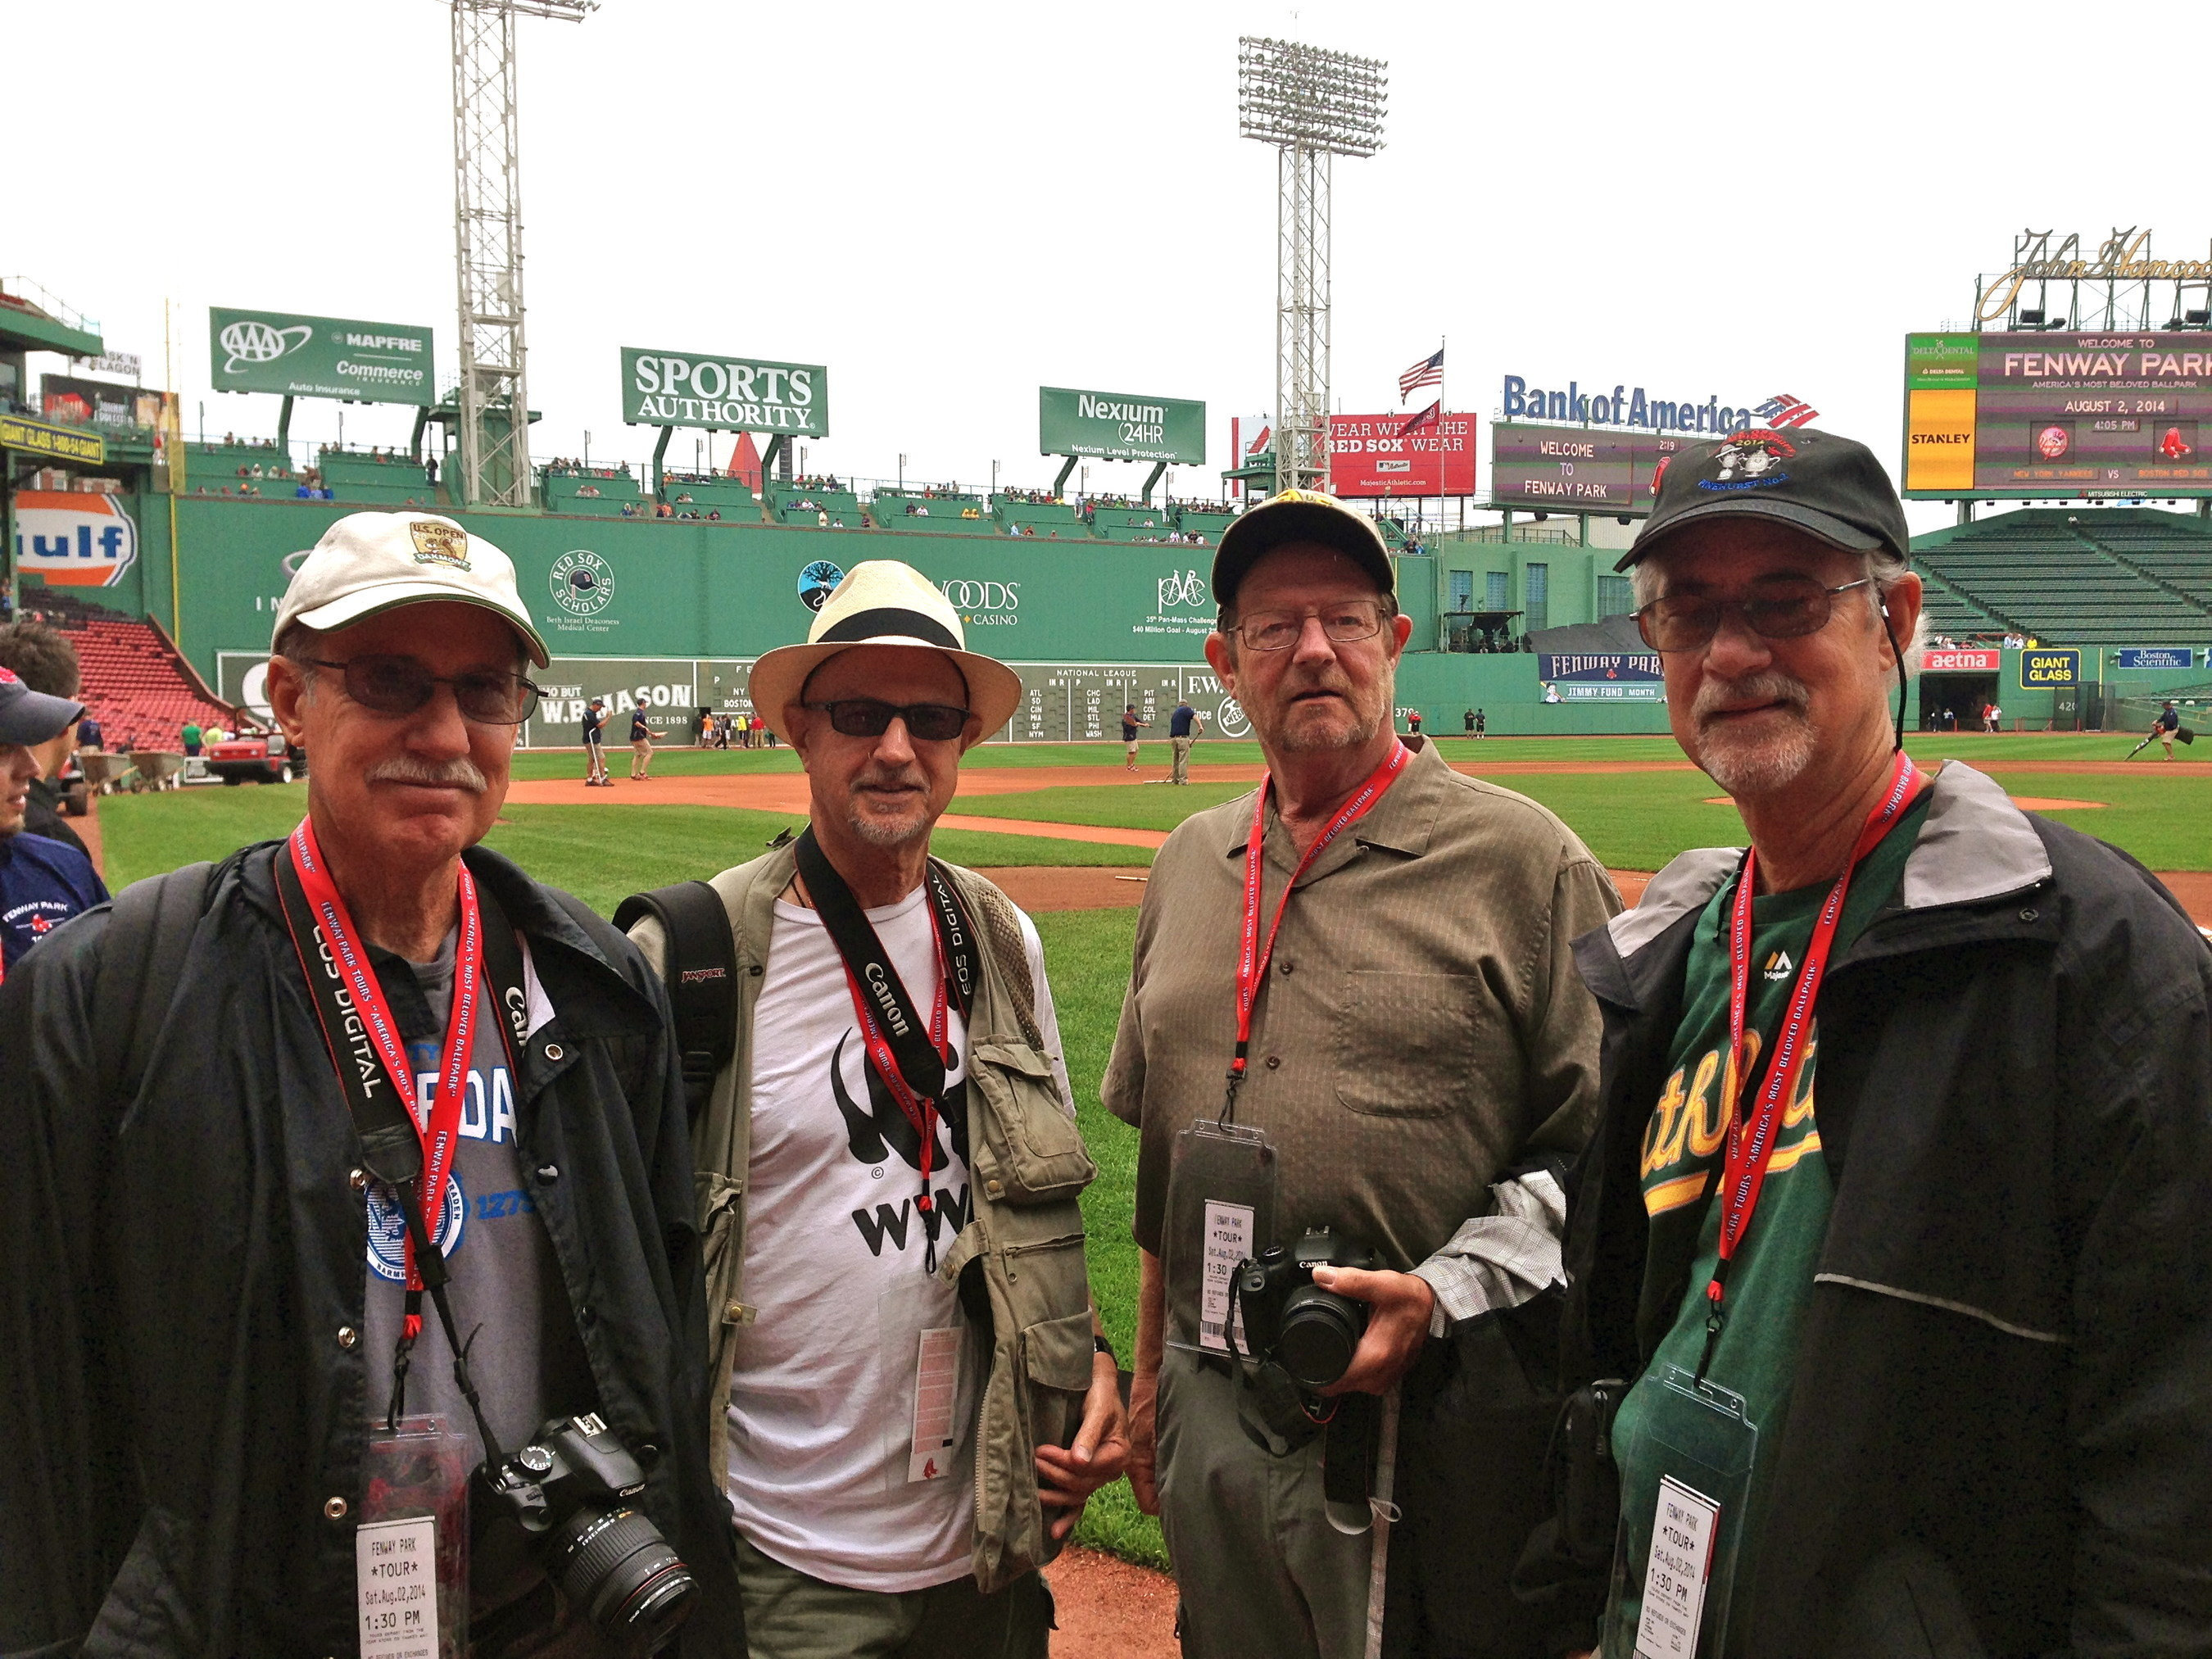 John Rosskopf (second from the left) and lifelong buddies enjoy being on field at Fenway Park while on their East Coast bucket list baseball tour.